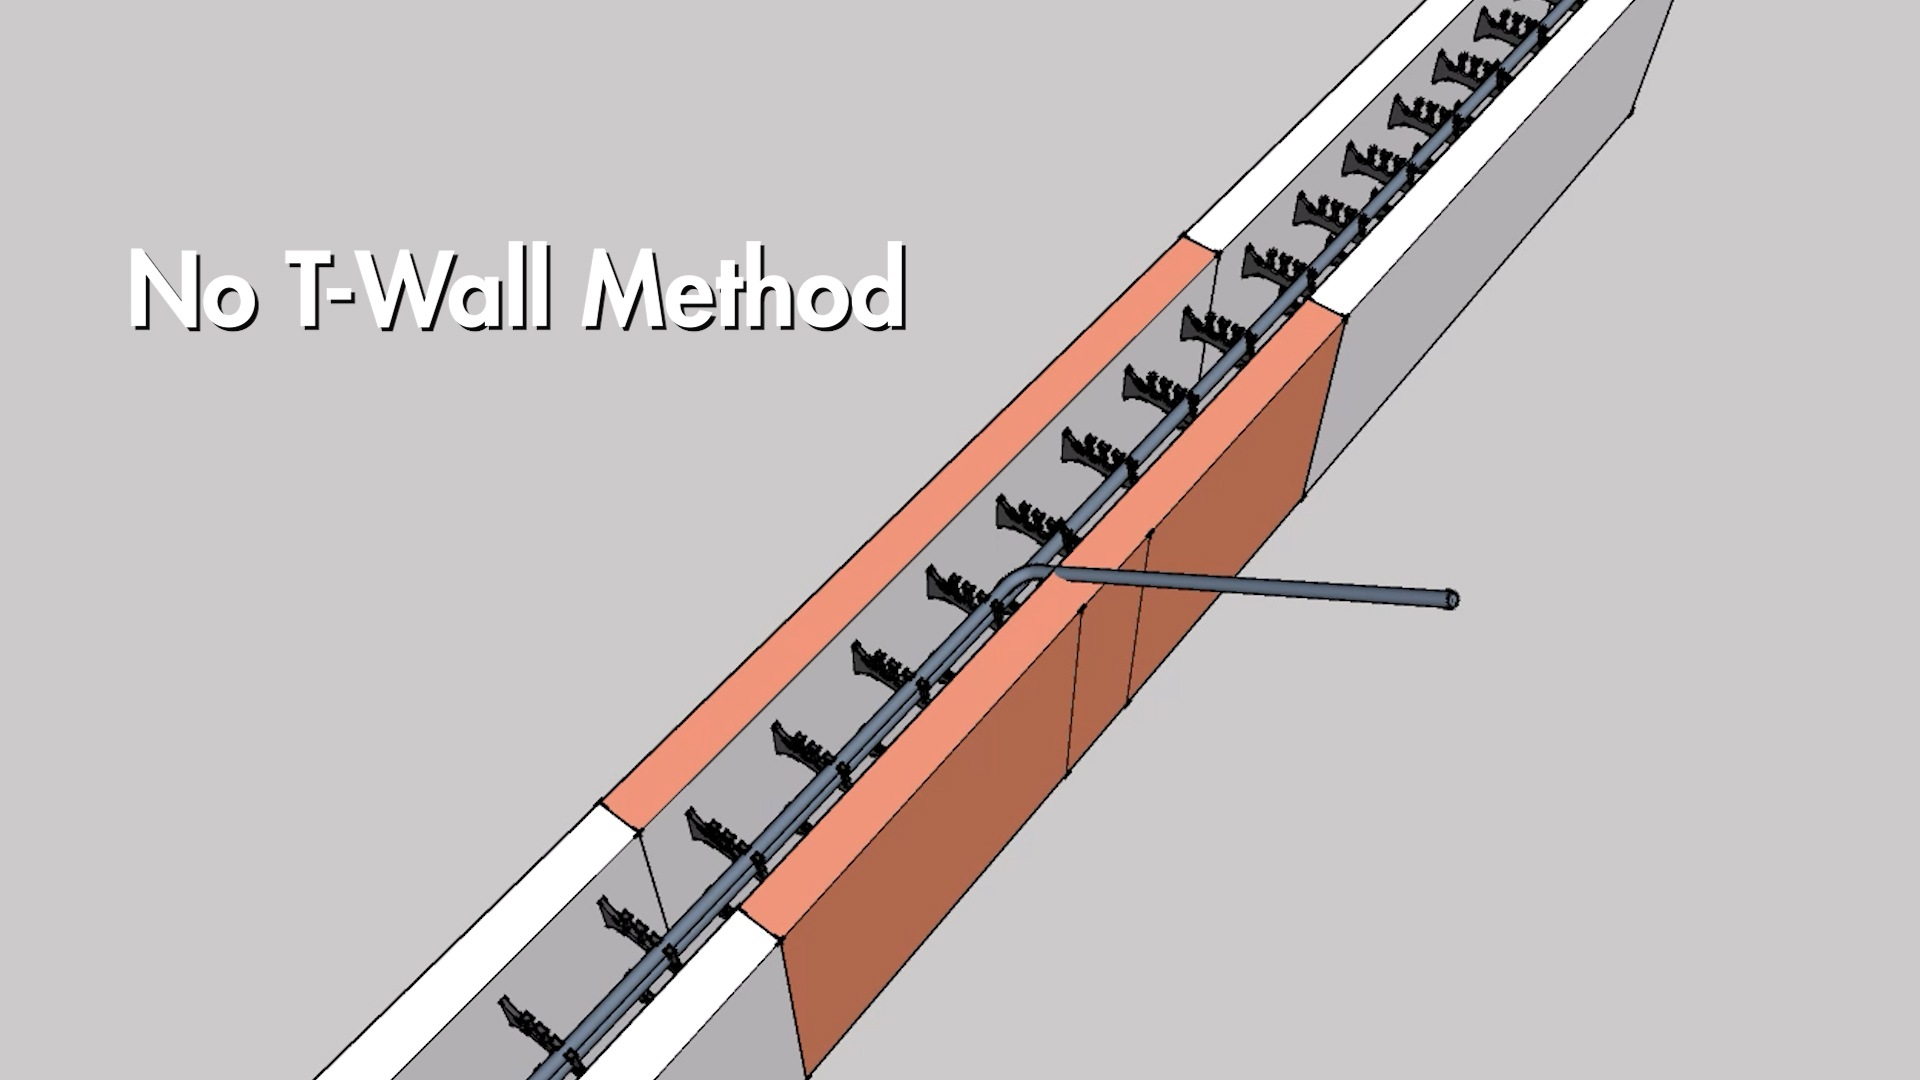 """Video: How To Construct T-Walls Using The """"No T-Wall Method"""""""